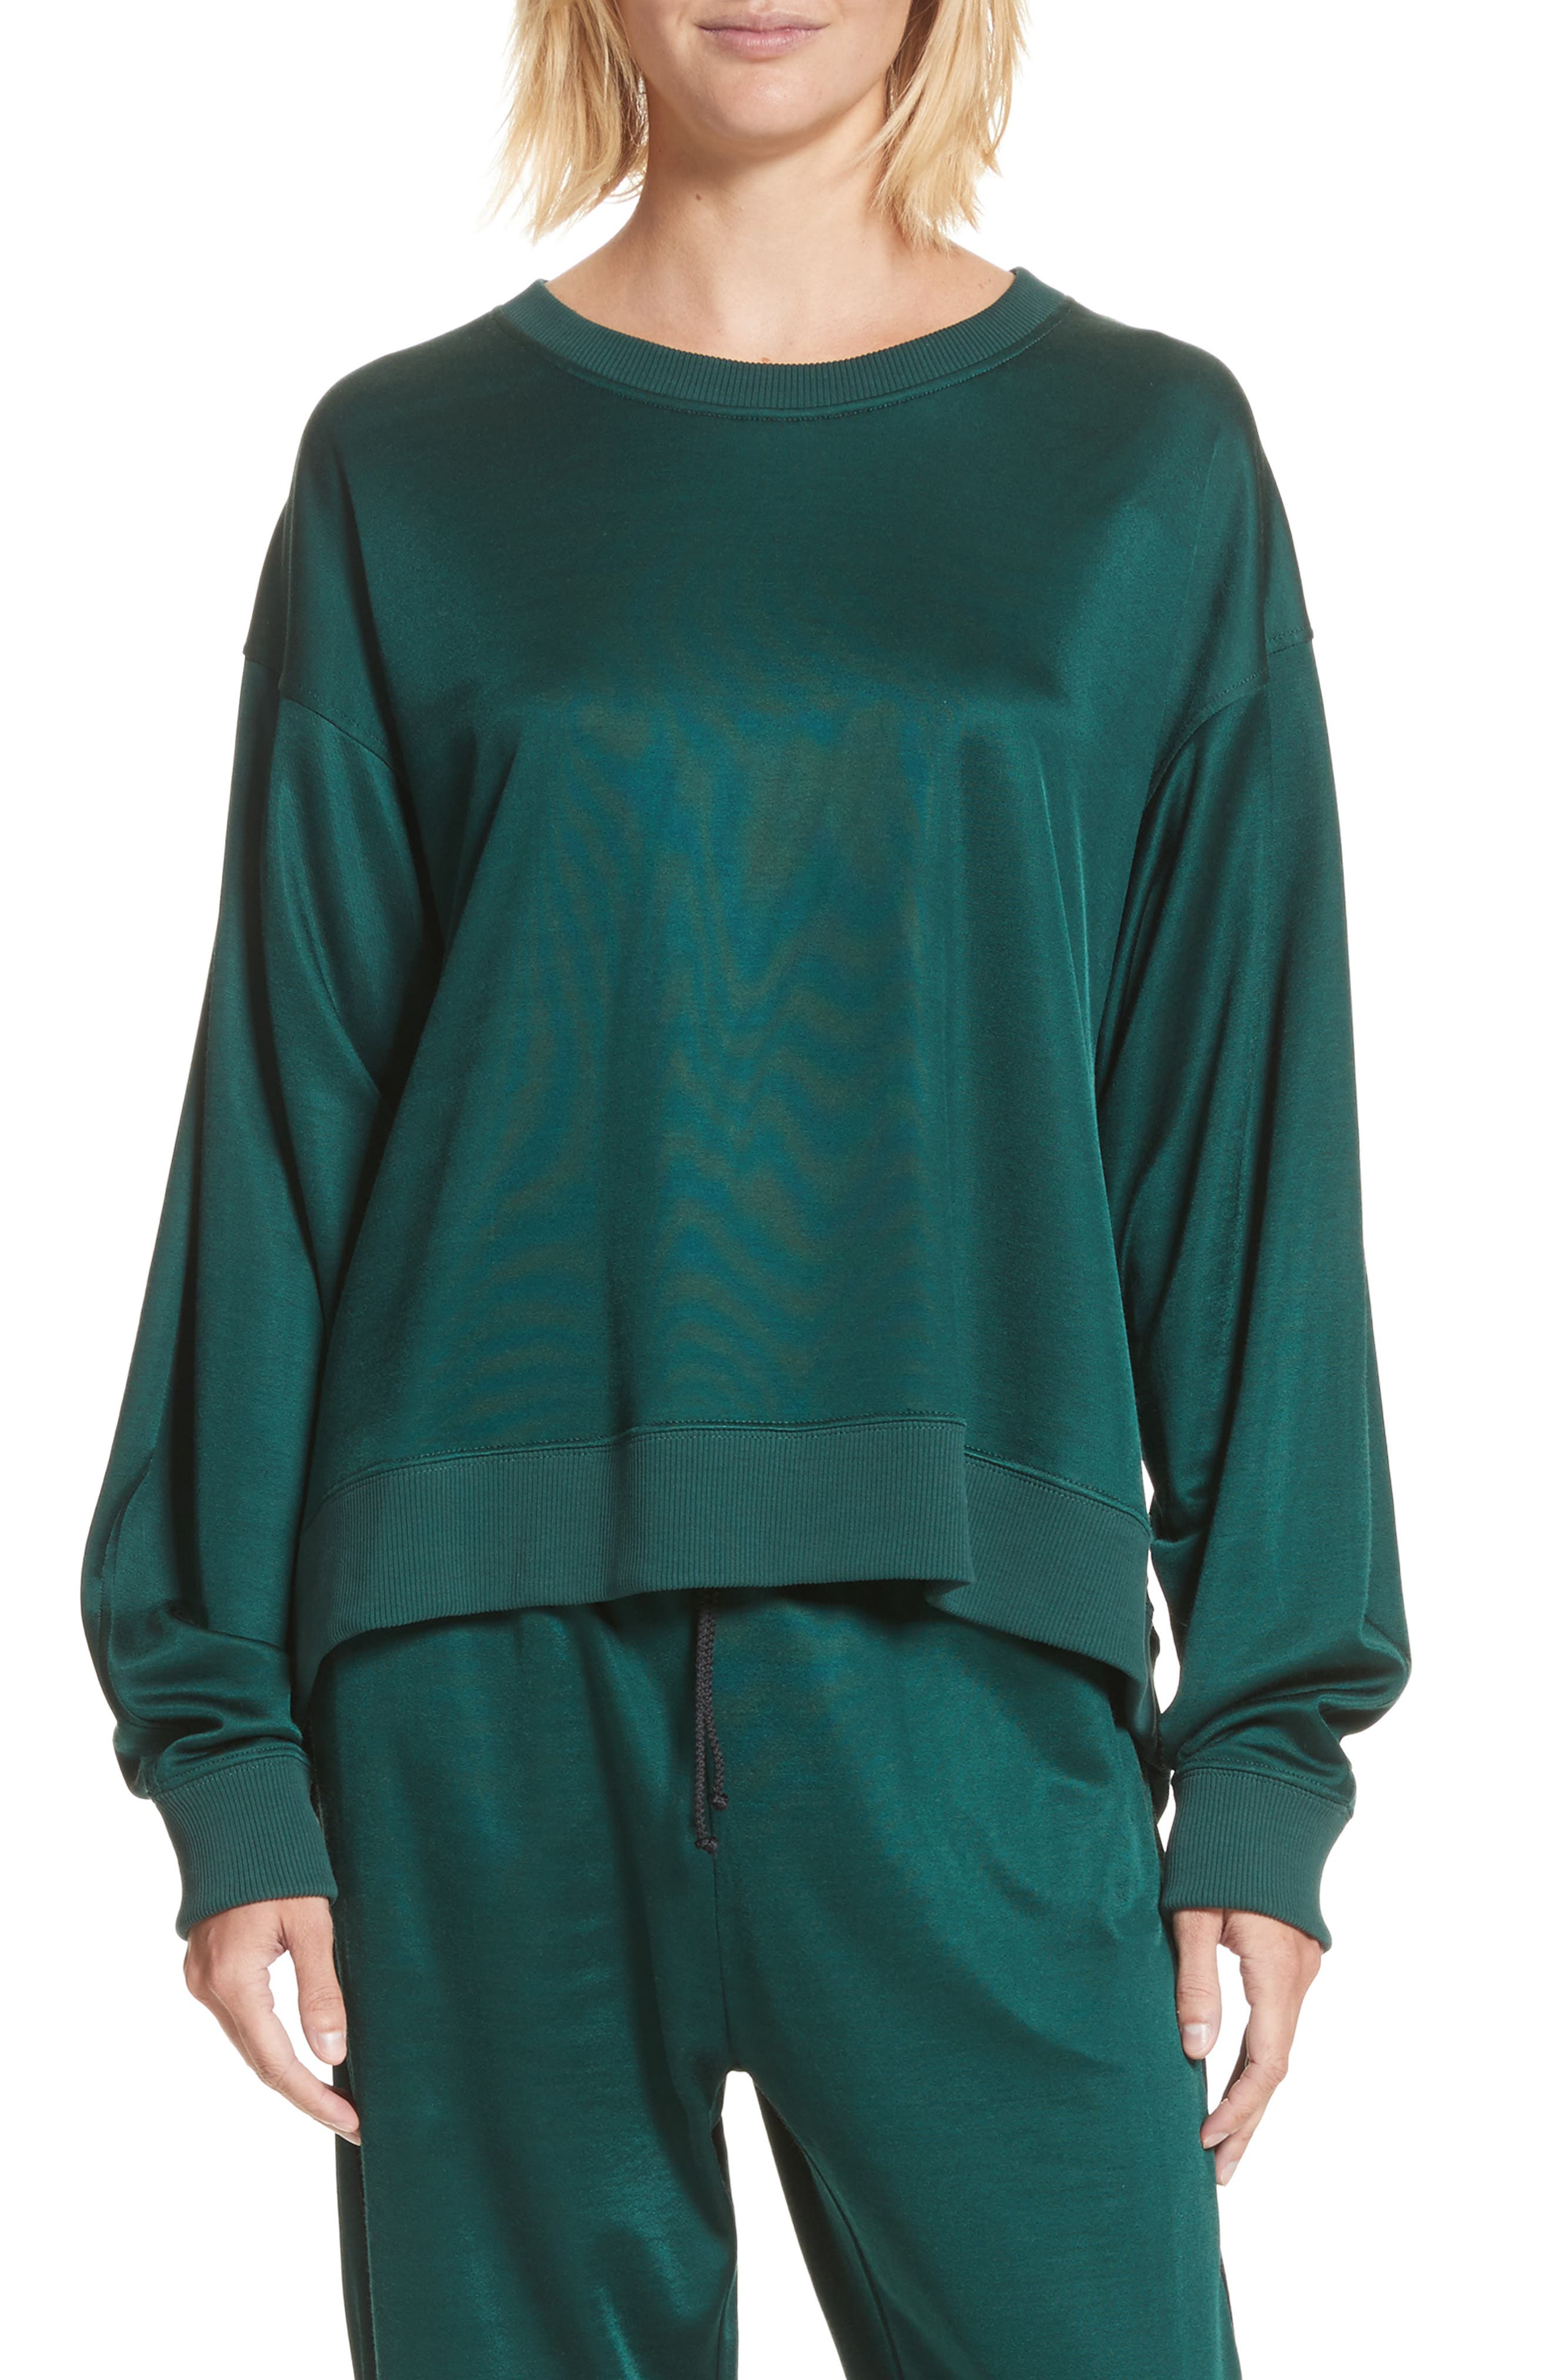 Track Suit Pullover,                             Main thumbnail 1, color,                             304